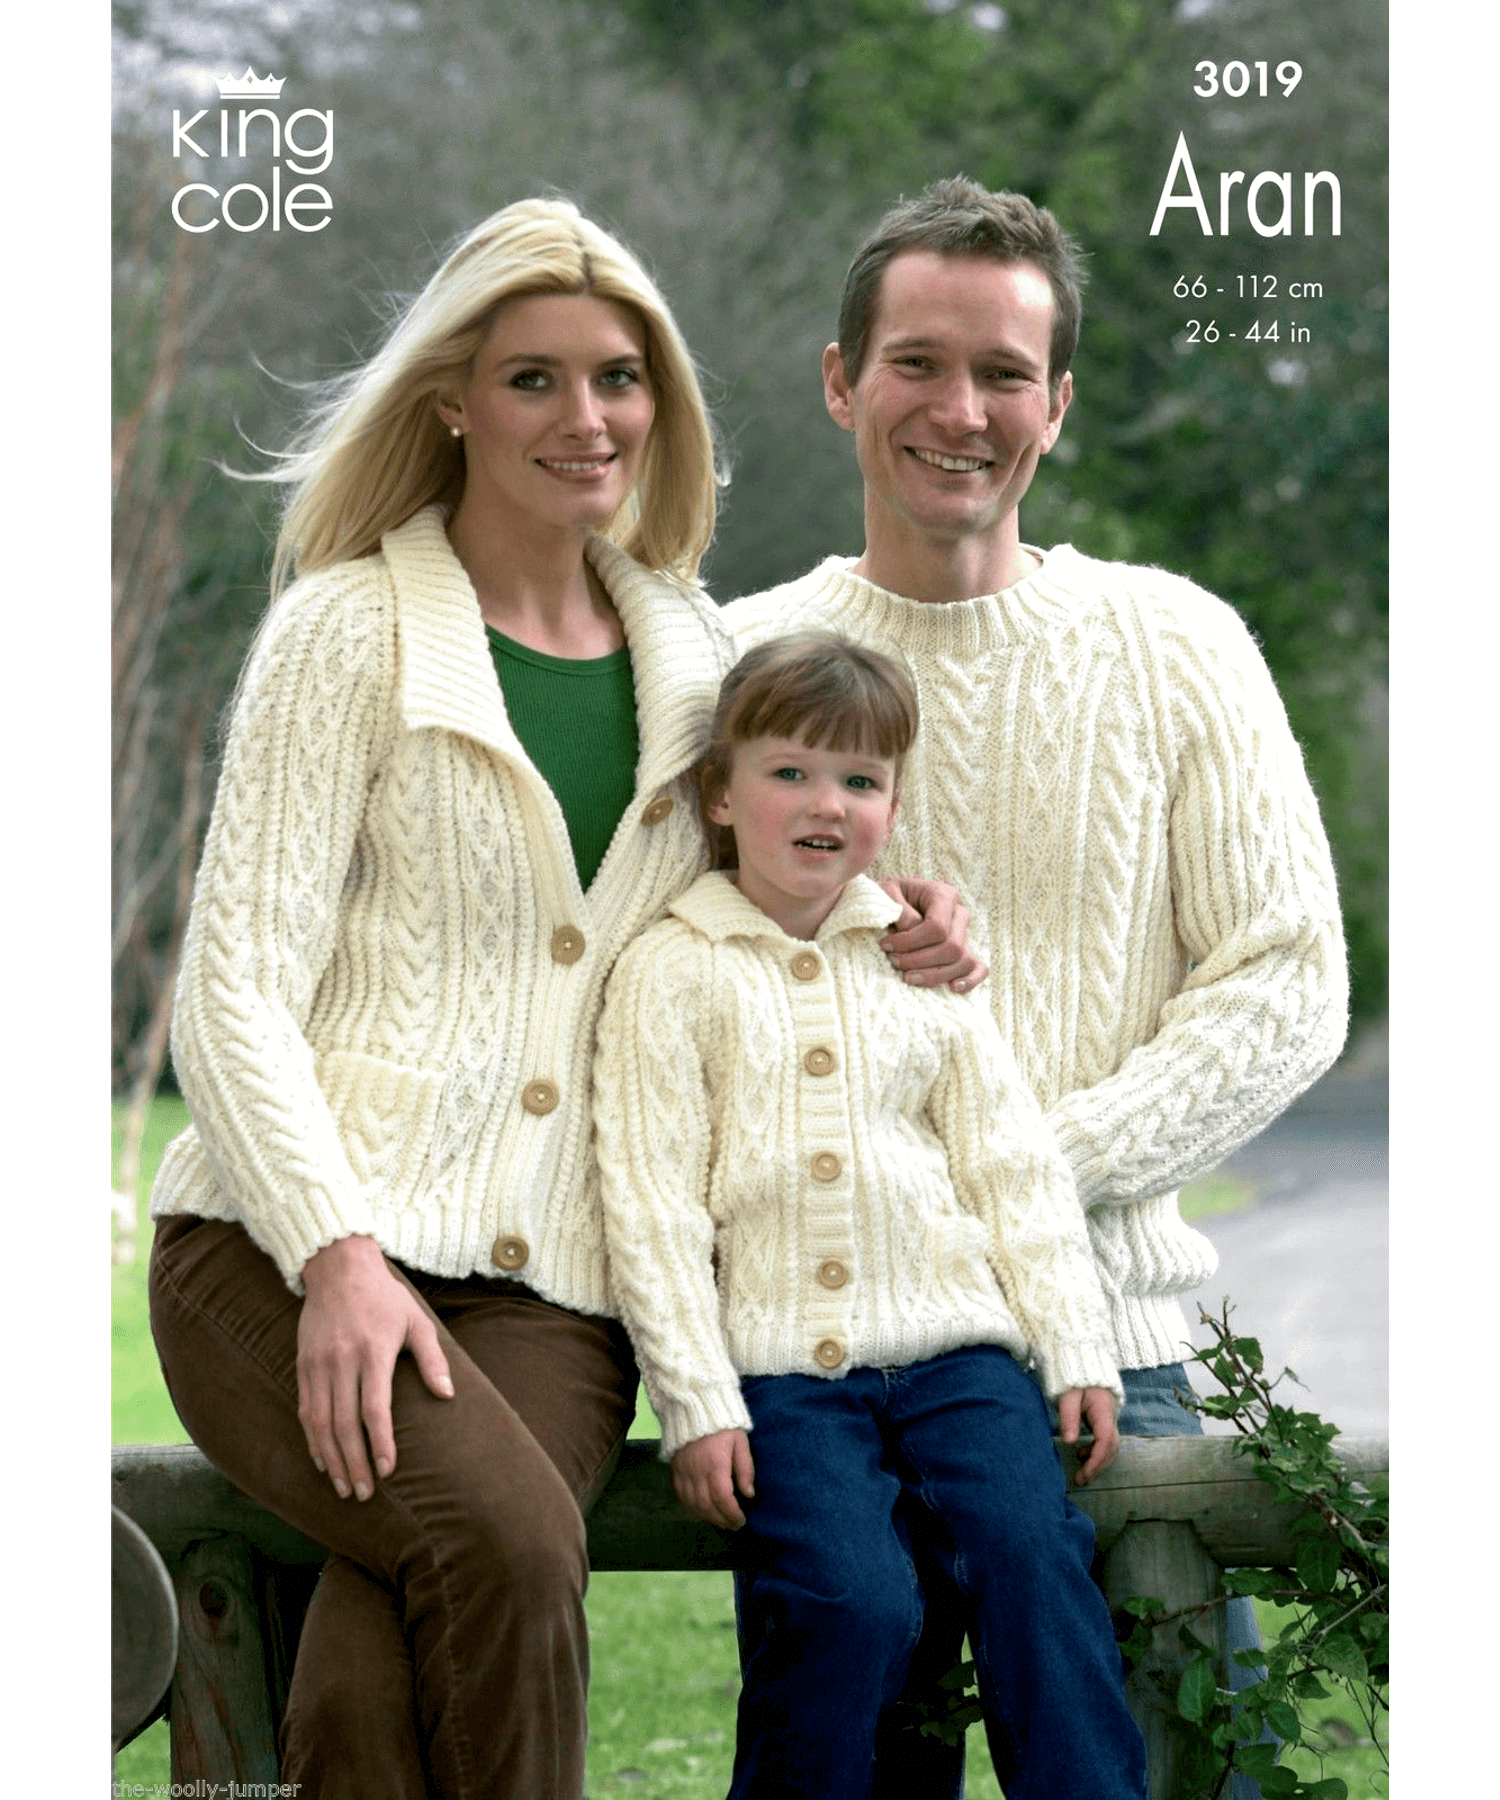 King Cole Aran Pattern 3019 - [Springwools] - Knitting - Irish Gifts